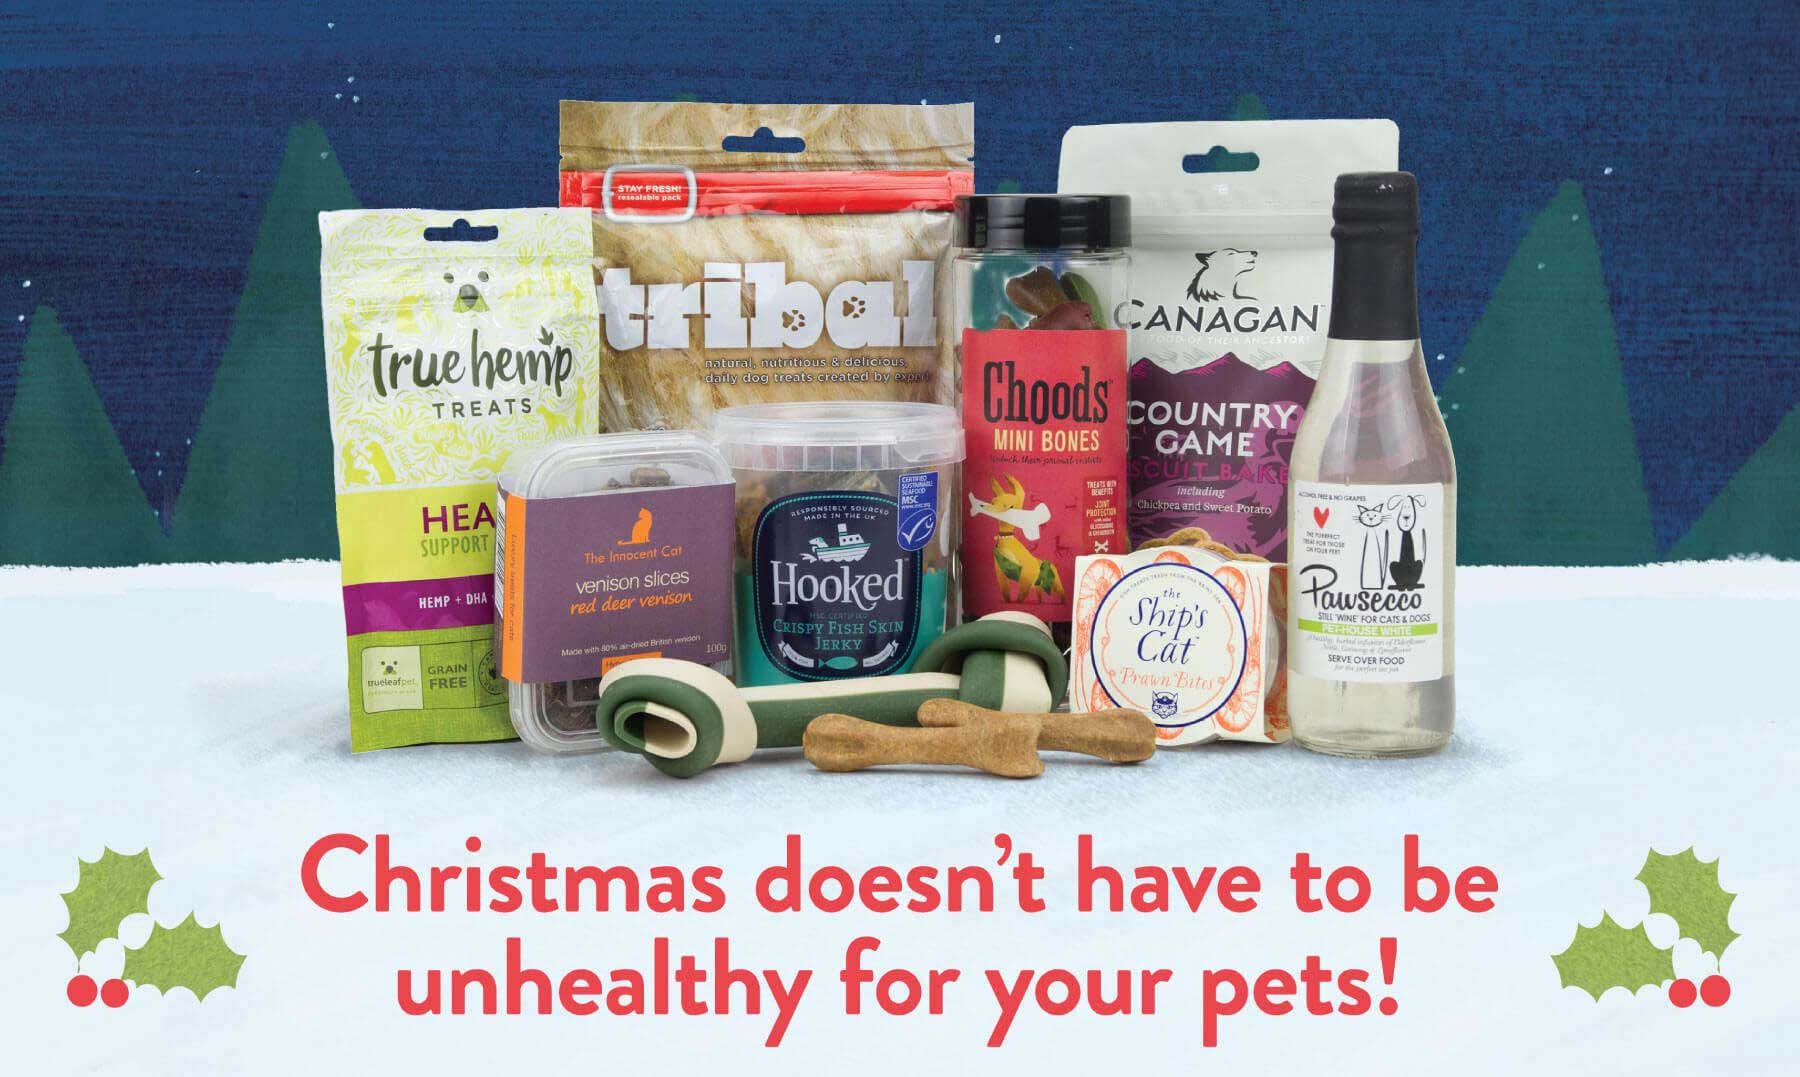 Christmas doesn't have to be unhealthy for your pets!